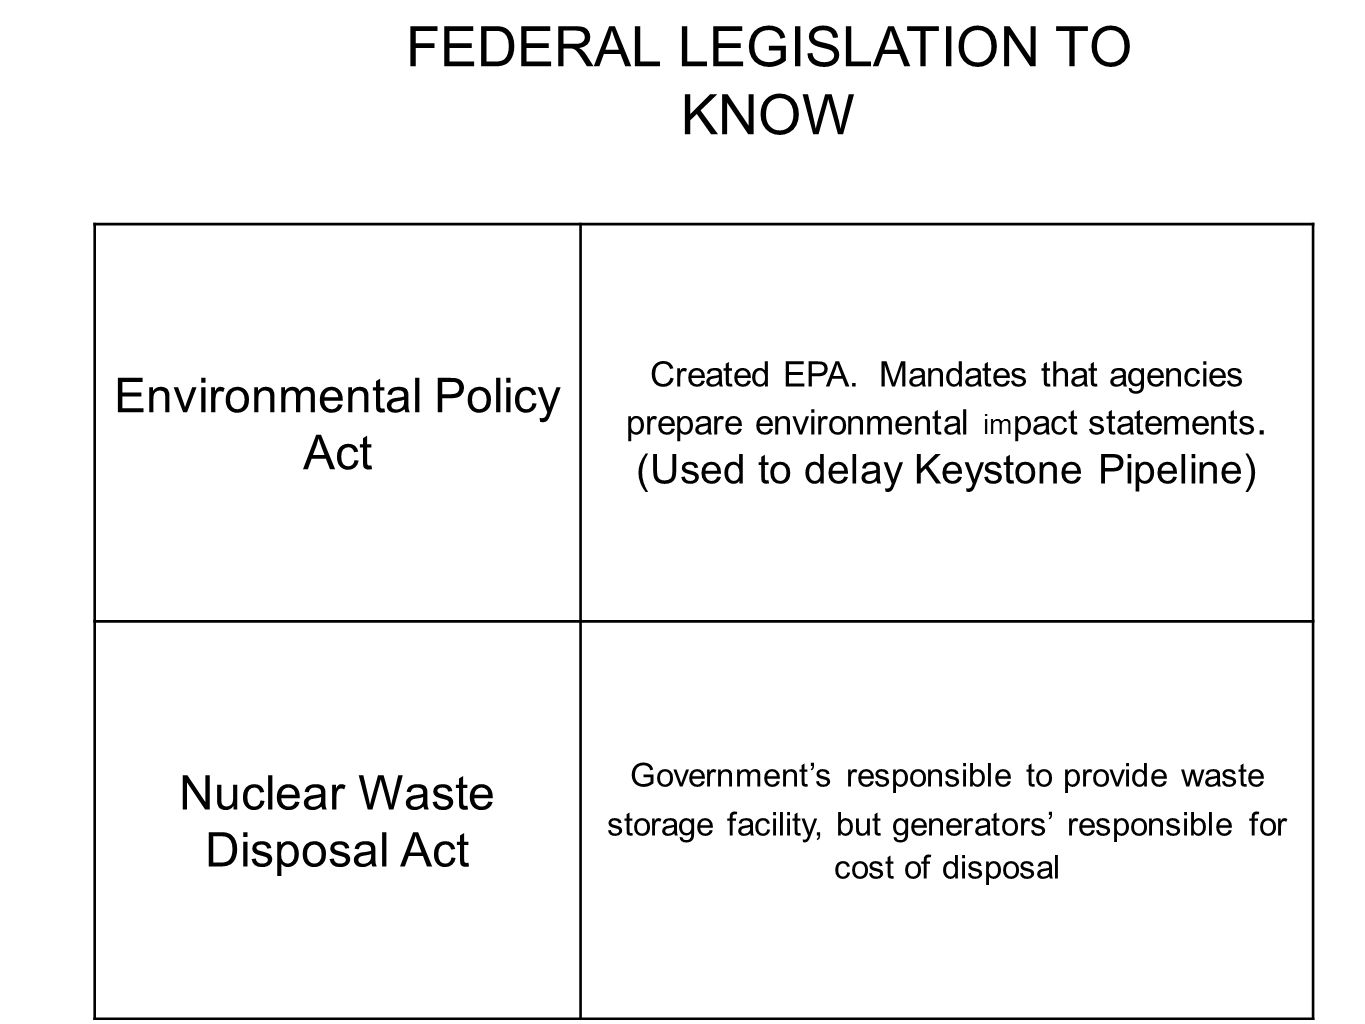 FEDERAL LEGISLATION TO KNOW